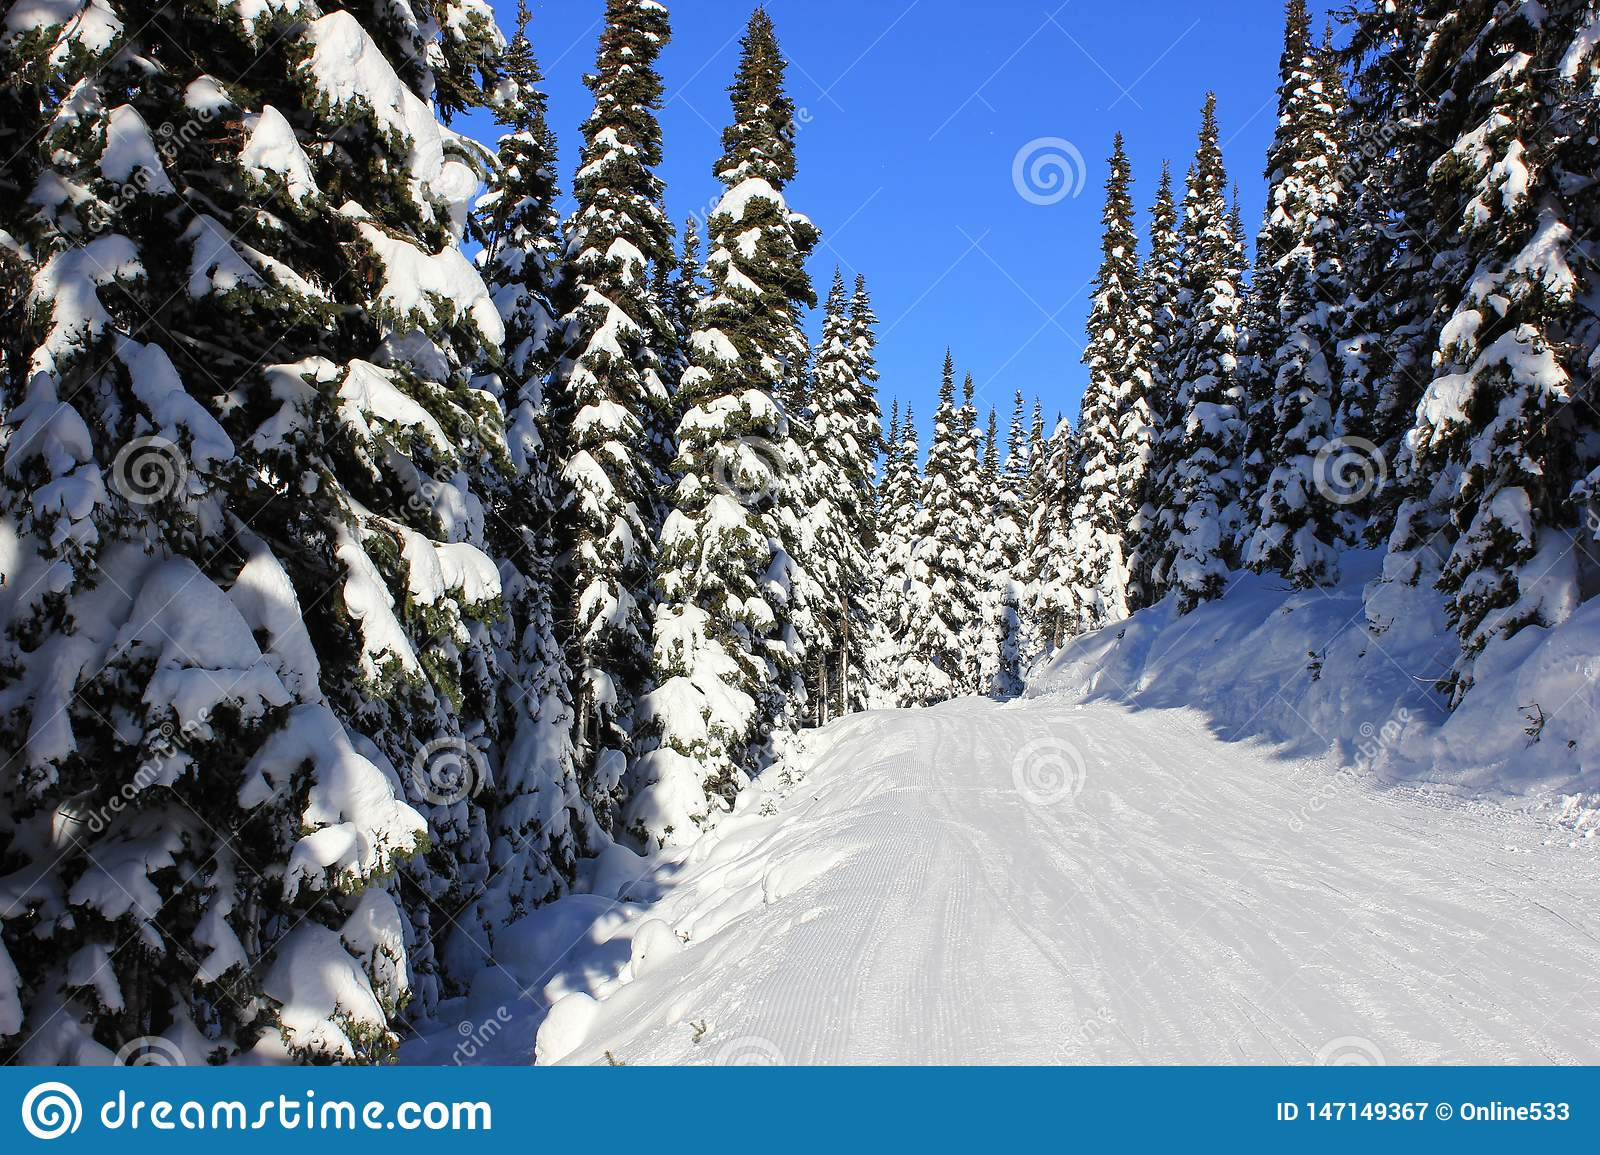 Snowy forest in winter on a sunny day